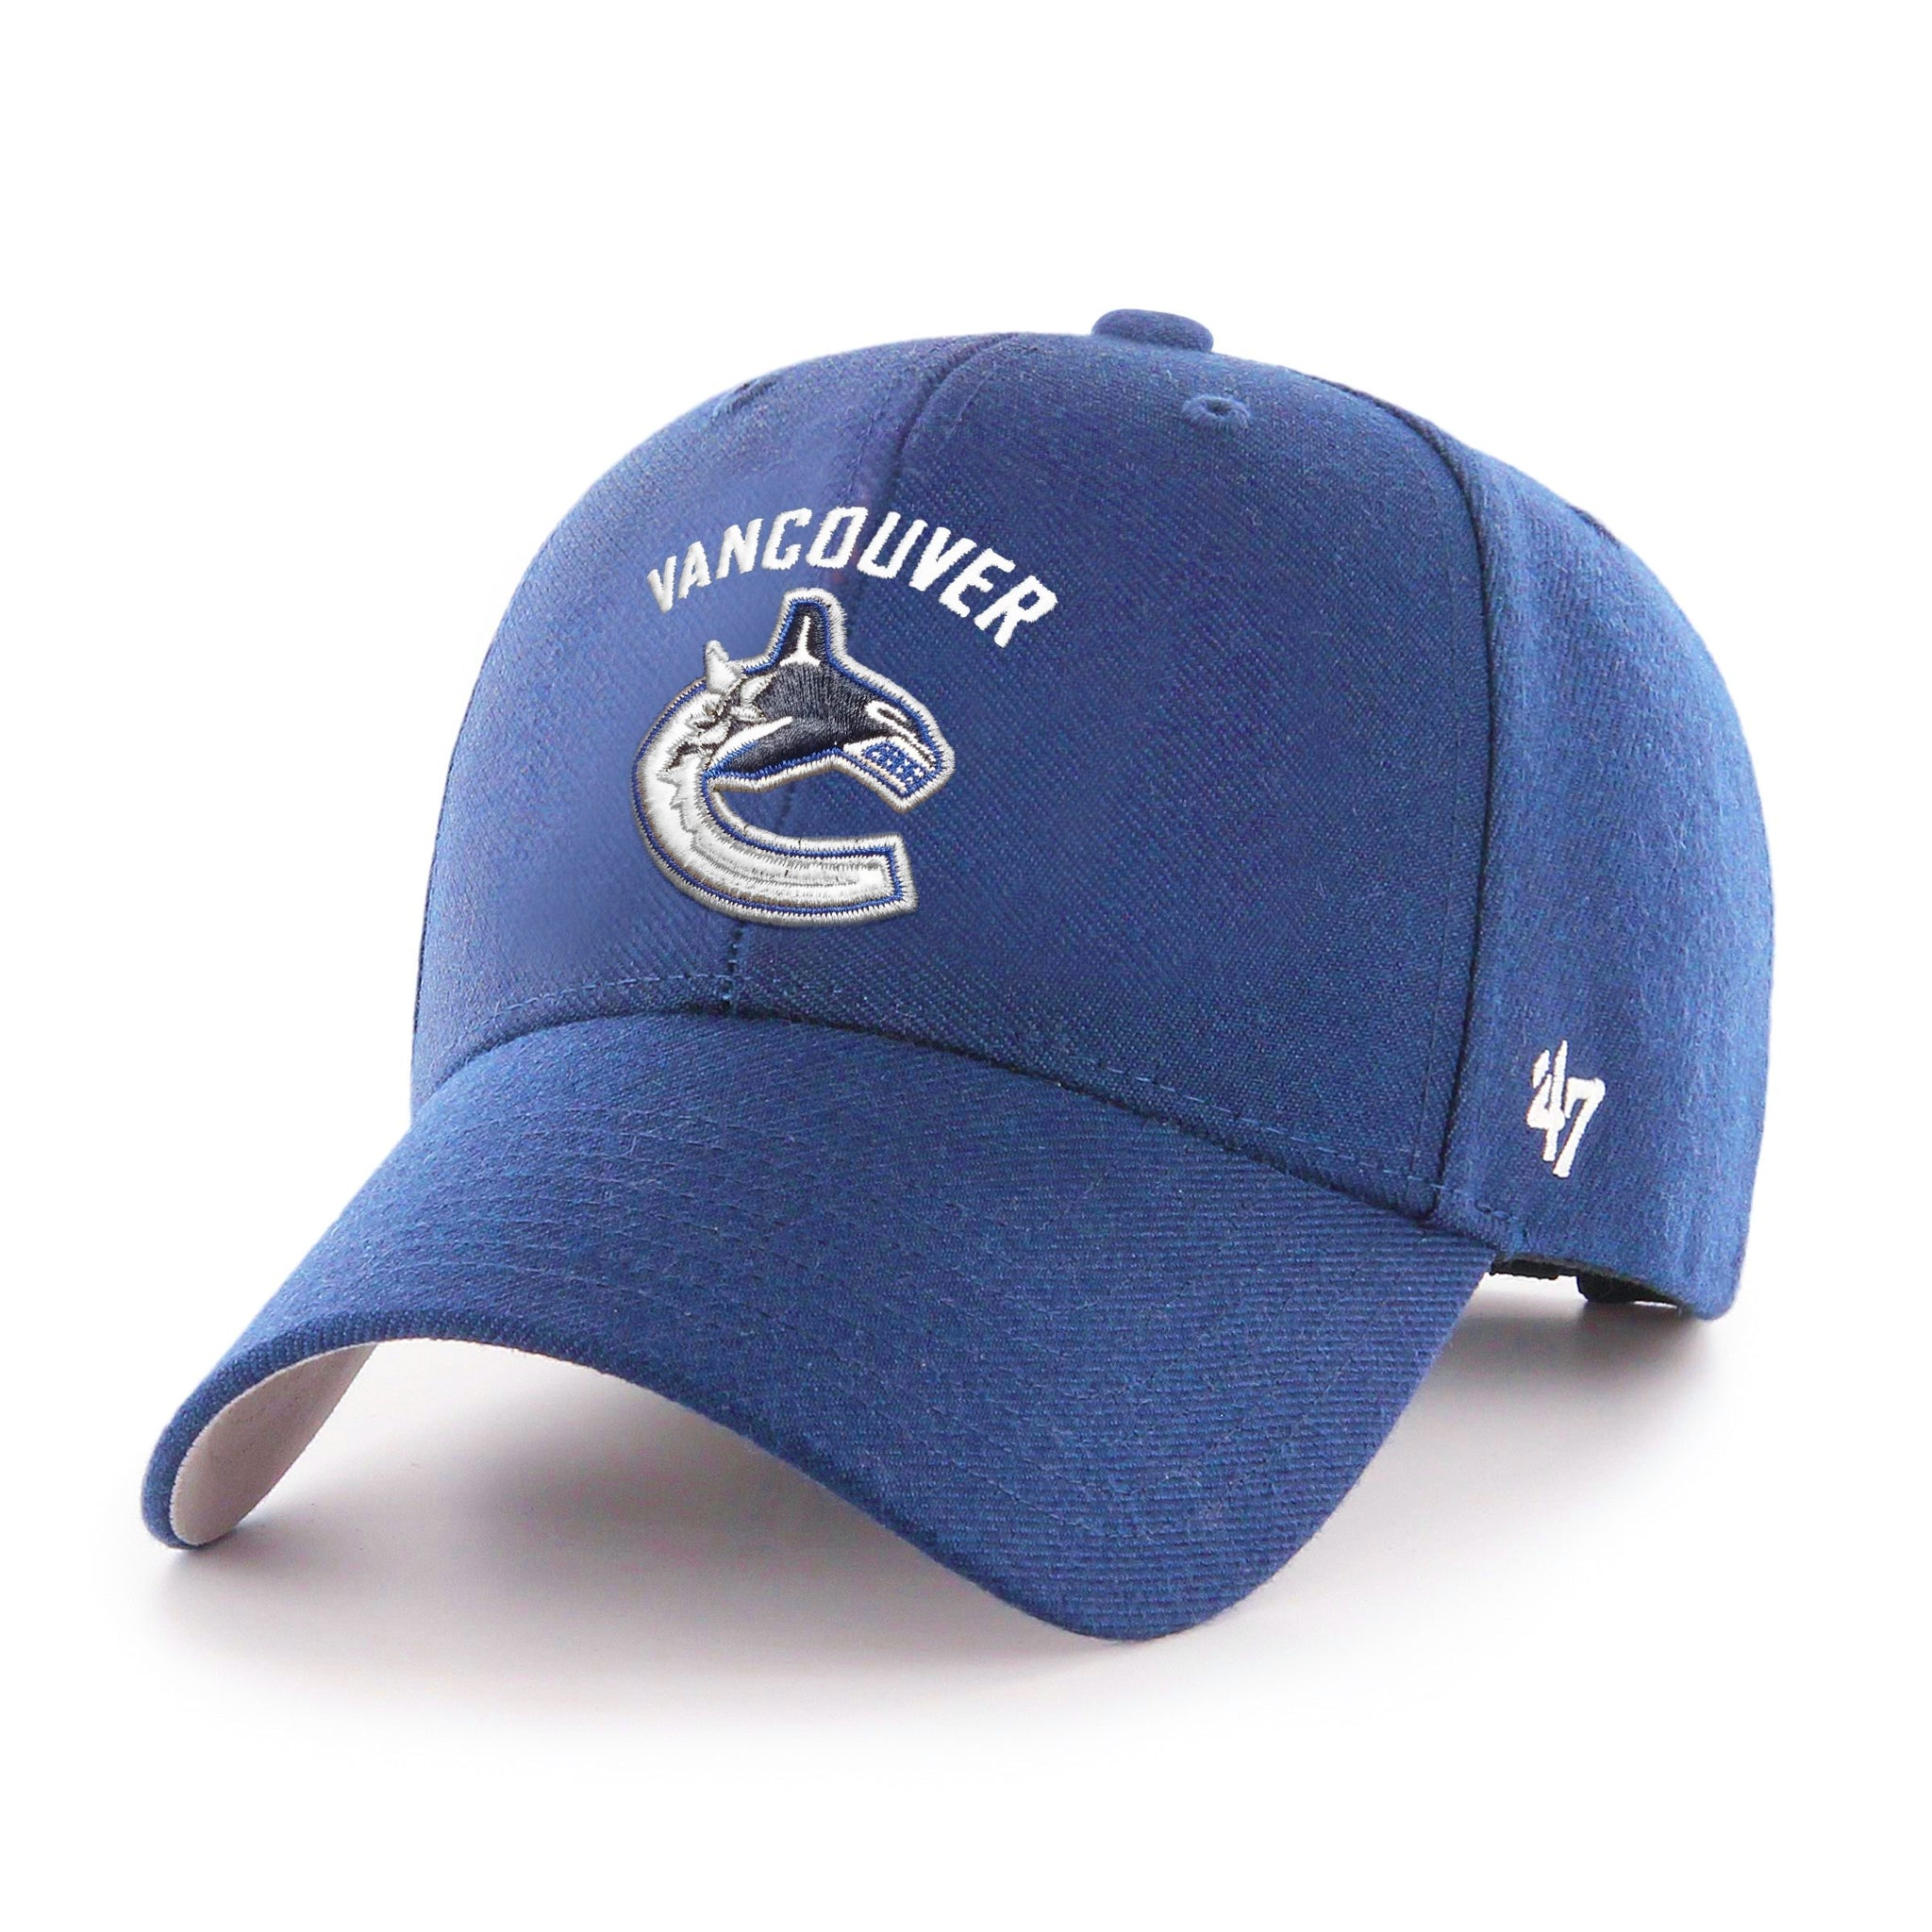 Vancouver Canucks Adjustable Hat